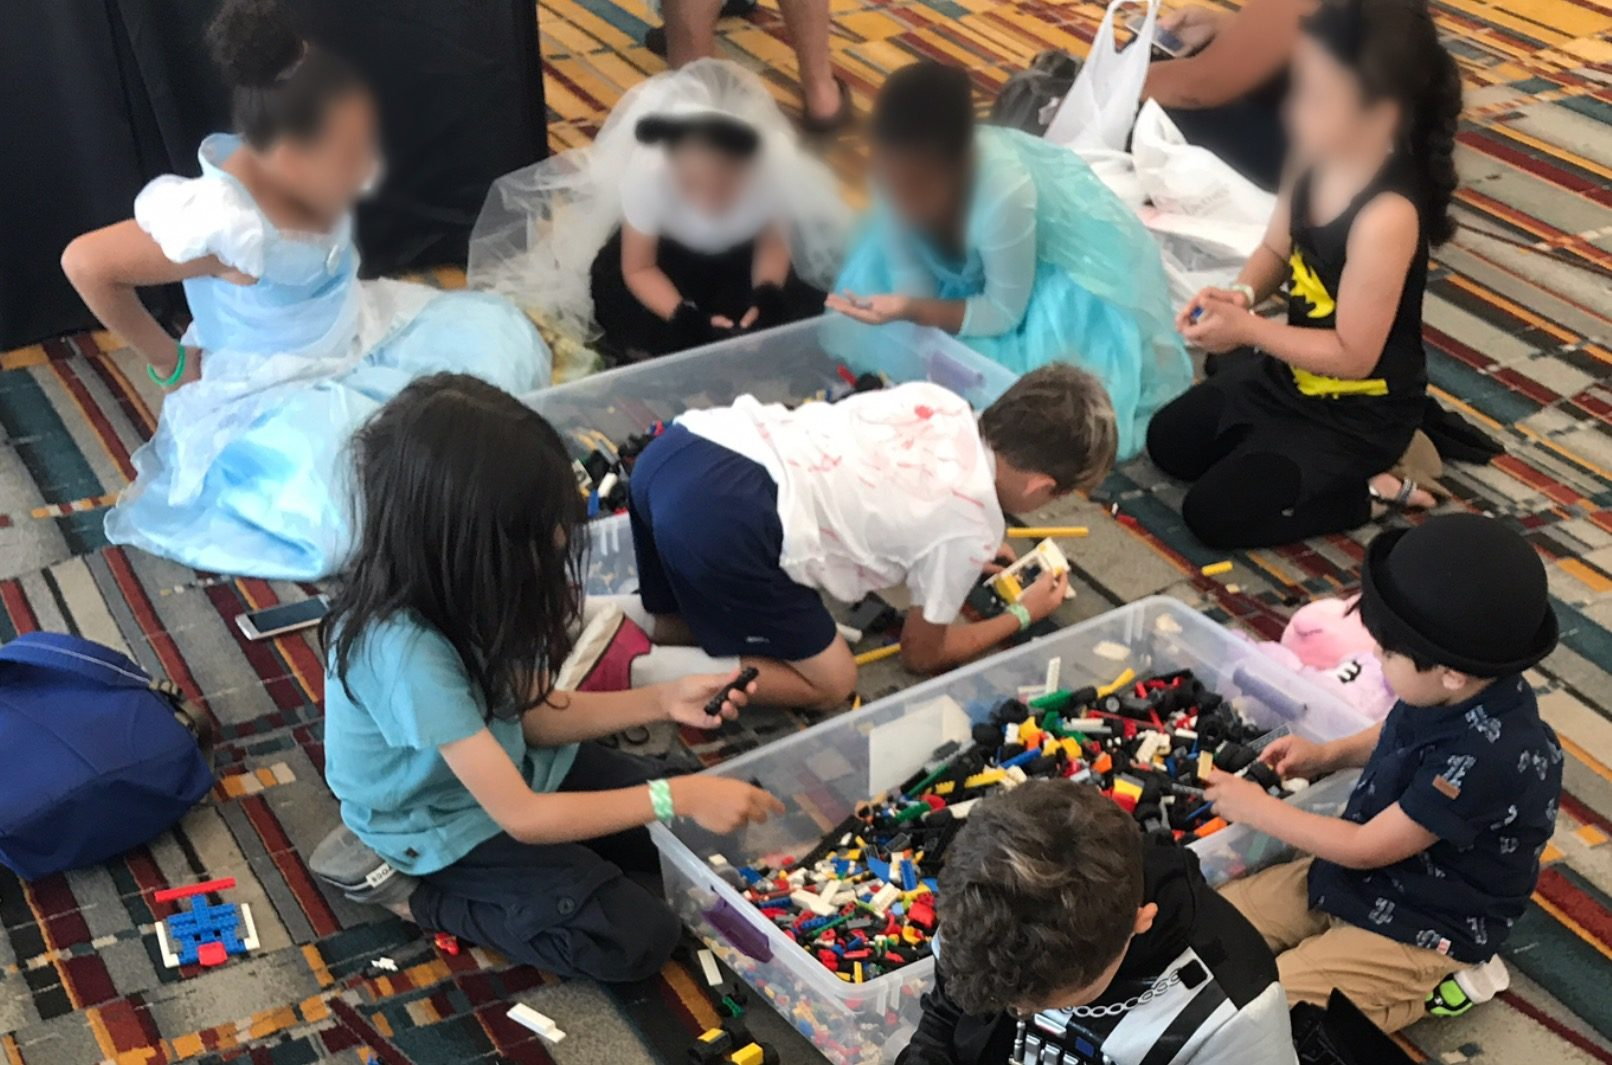 ConnLUG at ConnectiCon: Building the LEGO Community